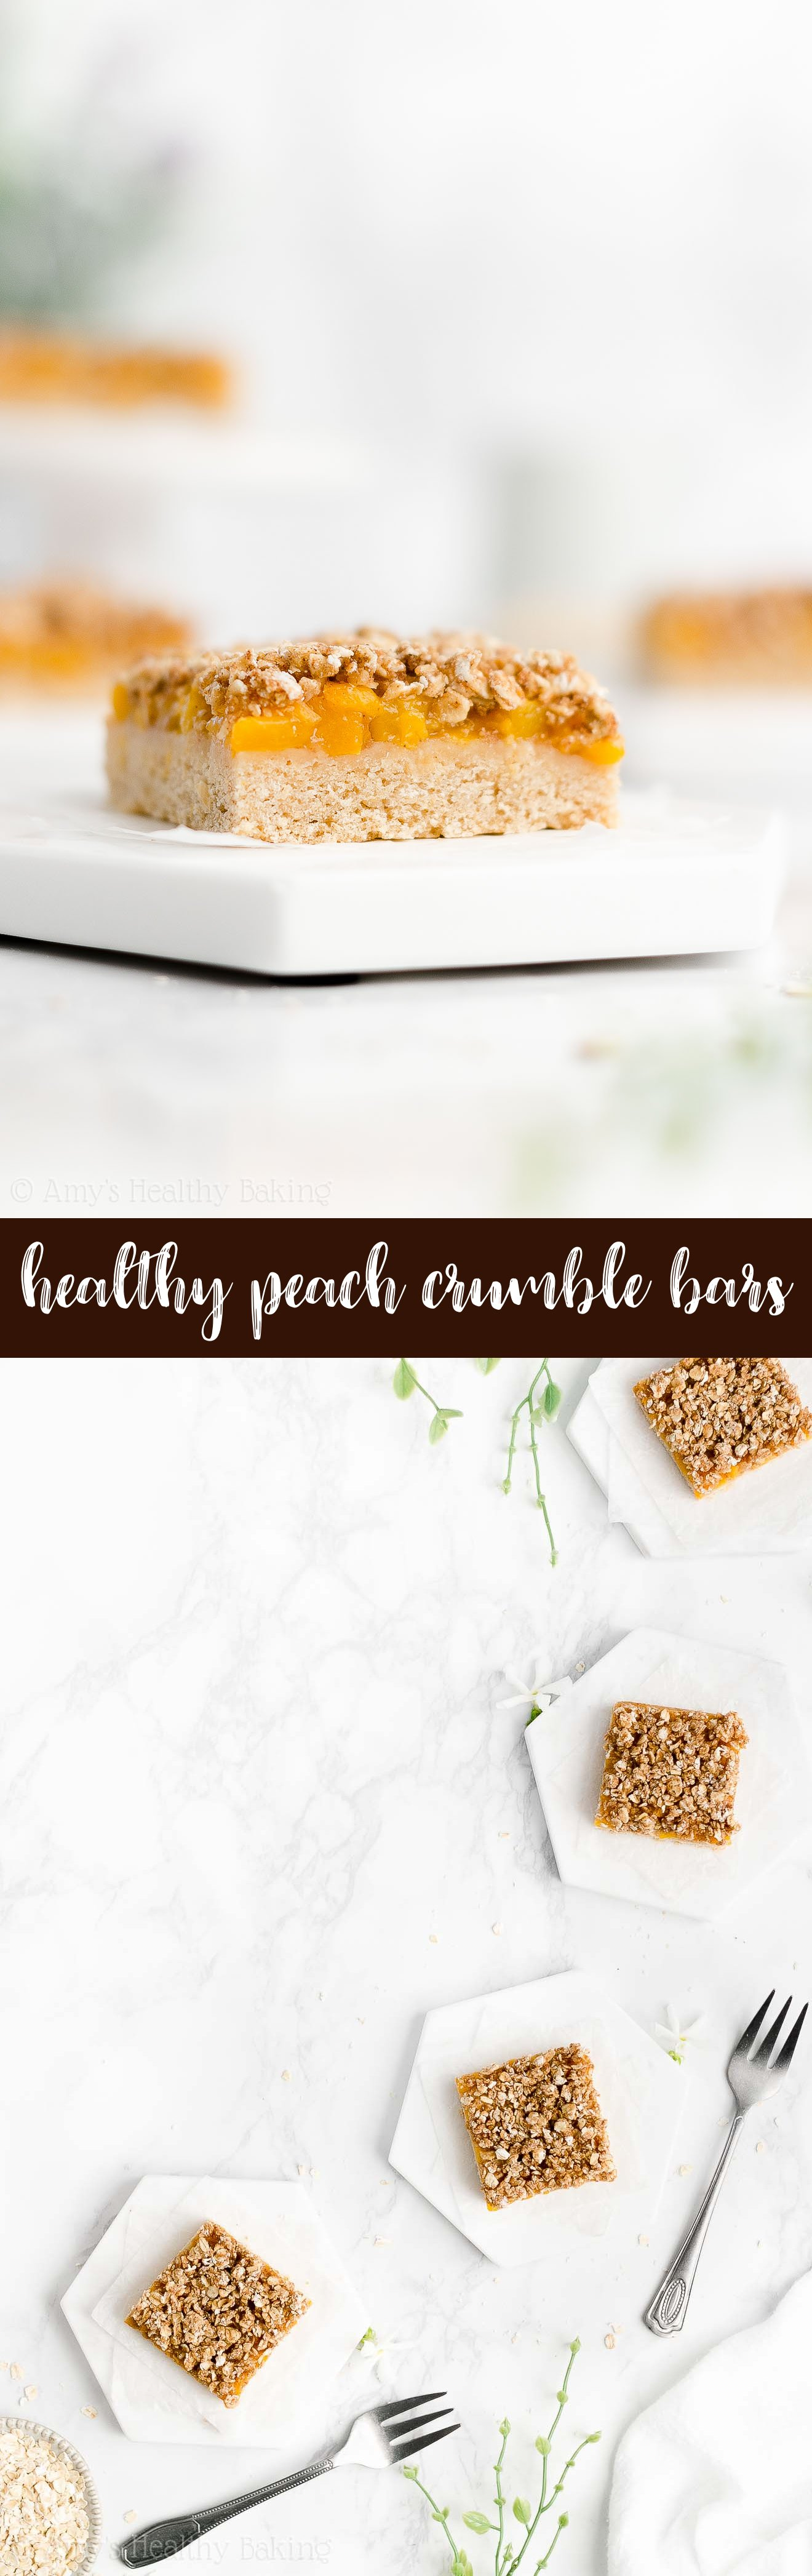 Best Ever Easy Healthy Vegan Gluten Free Peach Oatmeal Crumble Bars with Fresh or Canned Peaches